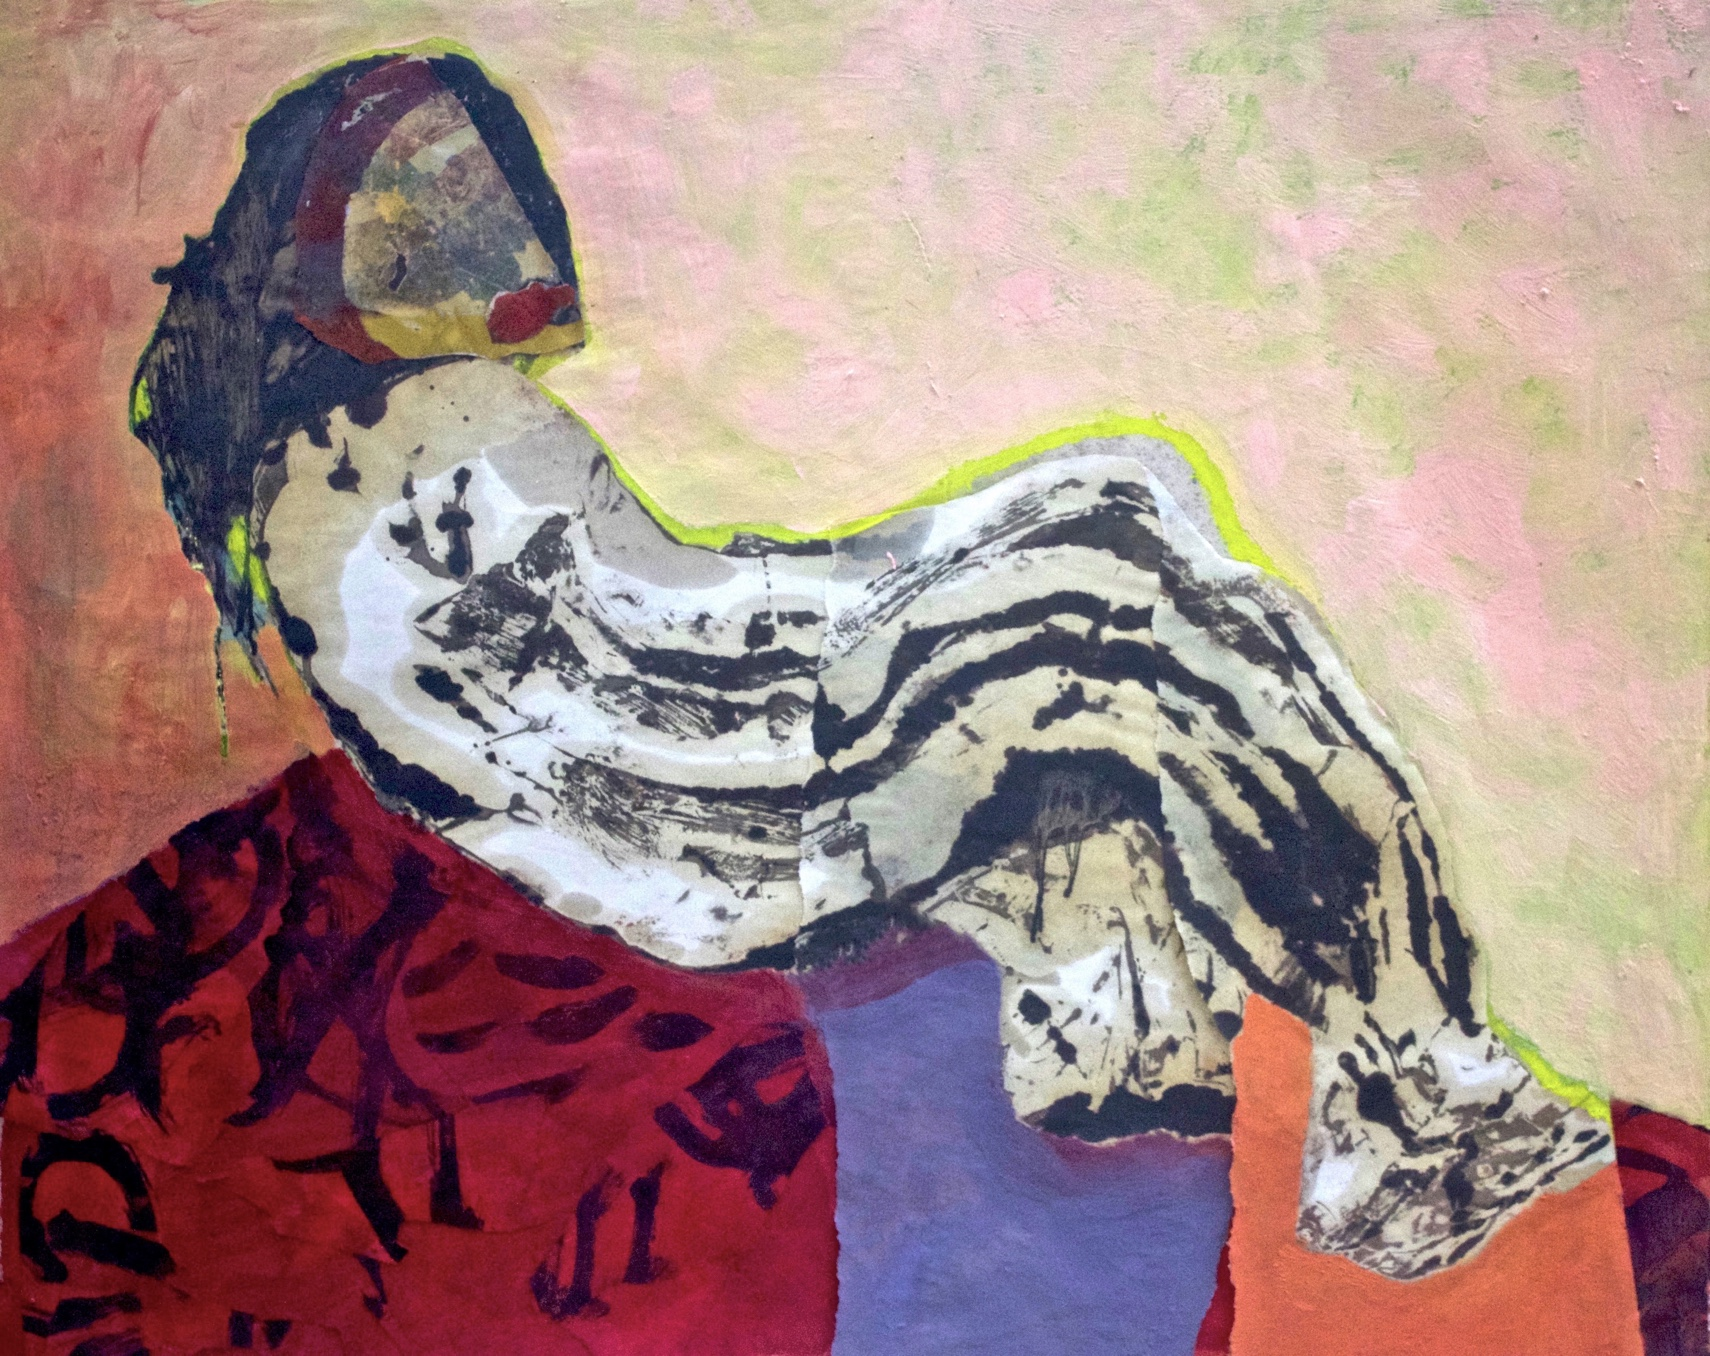 Hildy Maze - Honorable MentionHildy Maze is an American artist born in Brooklyn, NY. She received a BFA from Pratt Institute. Her work is influenced by her 25-year study and practice of Tibetan Buddhist meditation. Hildy is best known for her oil on paper abstract contemplative drawing, painting collages, exploring the investigation of mind through art. Though her process and handling of materials she intimately describes ways the flawless nature of the essence and expression of the mind is hidden from our recognition. Hildy has exhibited her work throughout the U.S. including NYC, Long Island City, Brooklyn, California, Beijing, China. She has won numerous awards and is in several private collections in the U.S, Europe, and Asia. Hildy presently lives in East Hampton, NY.www.hildymaze.com